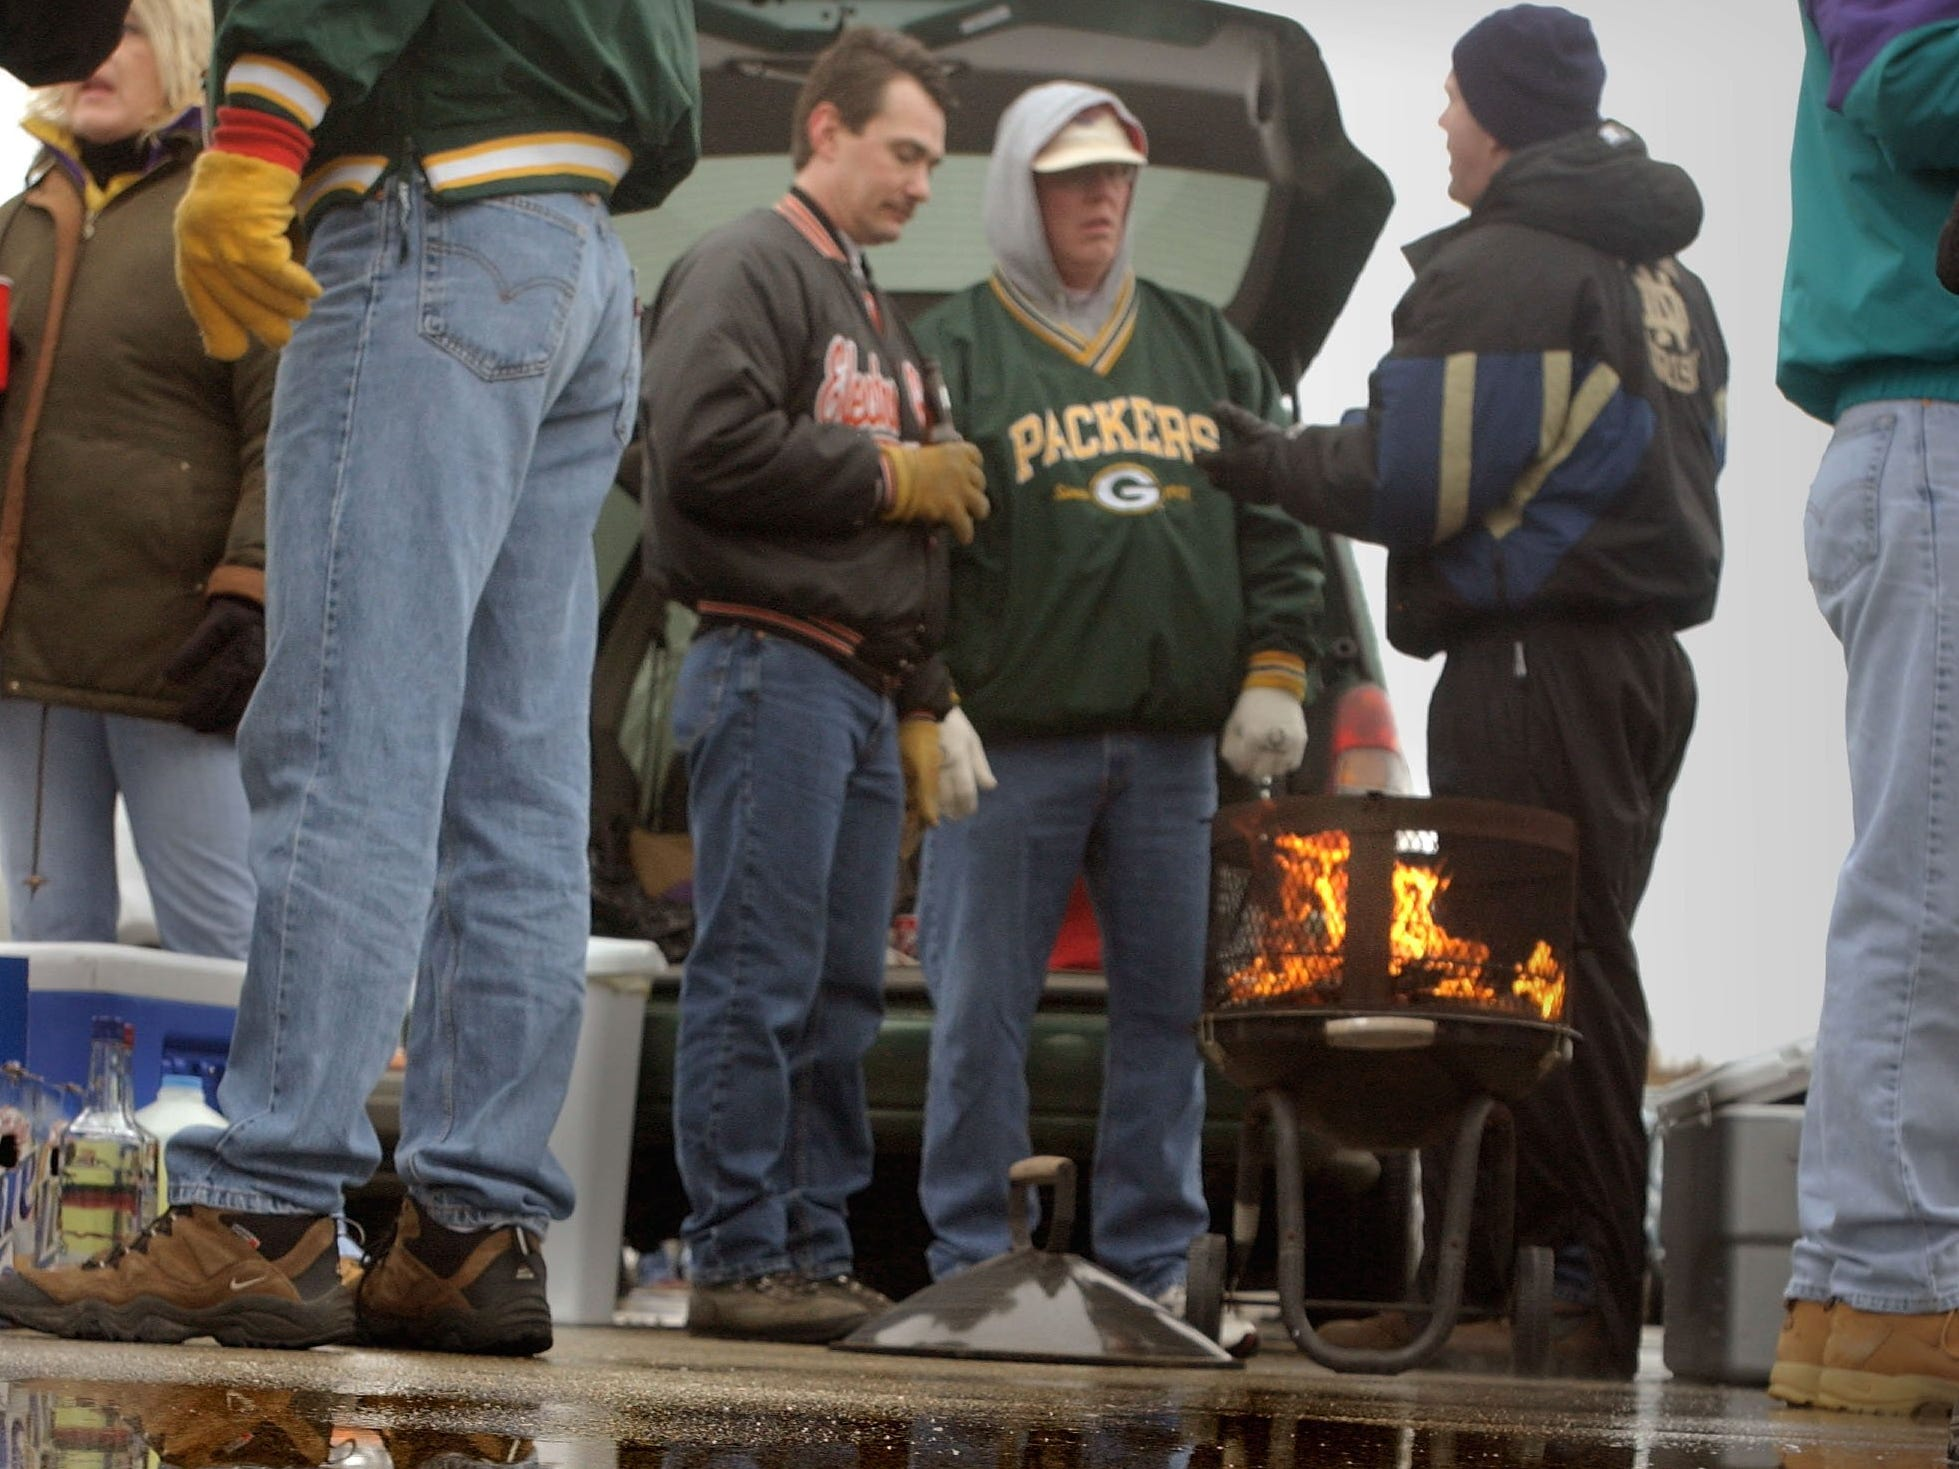 Fans Scott Ciske (from left), Bob Koster and Dave Kuhr keep the home-opener fires burning, despite the soggy and chilly conditions, outside Miller Park on April 4, 2003. The Milwaukee Brewers lost the home opener to the San Francisco Giants, 4-3.